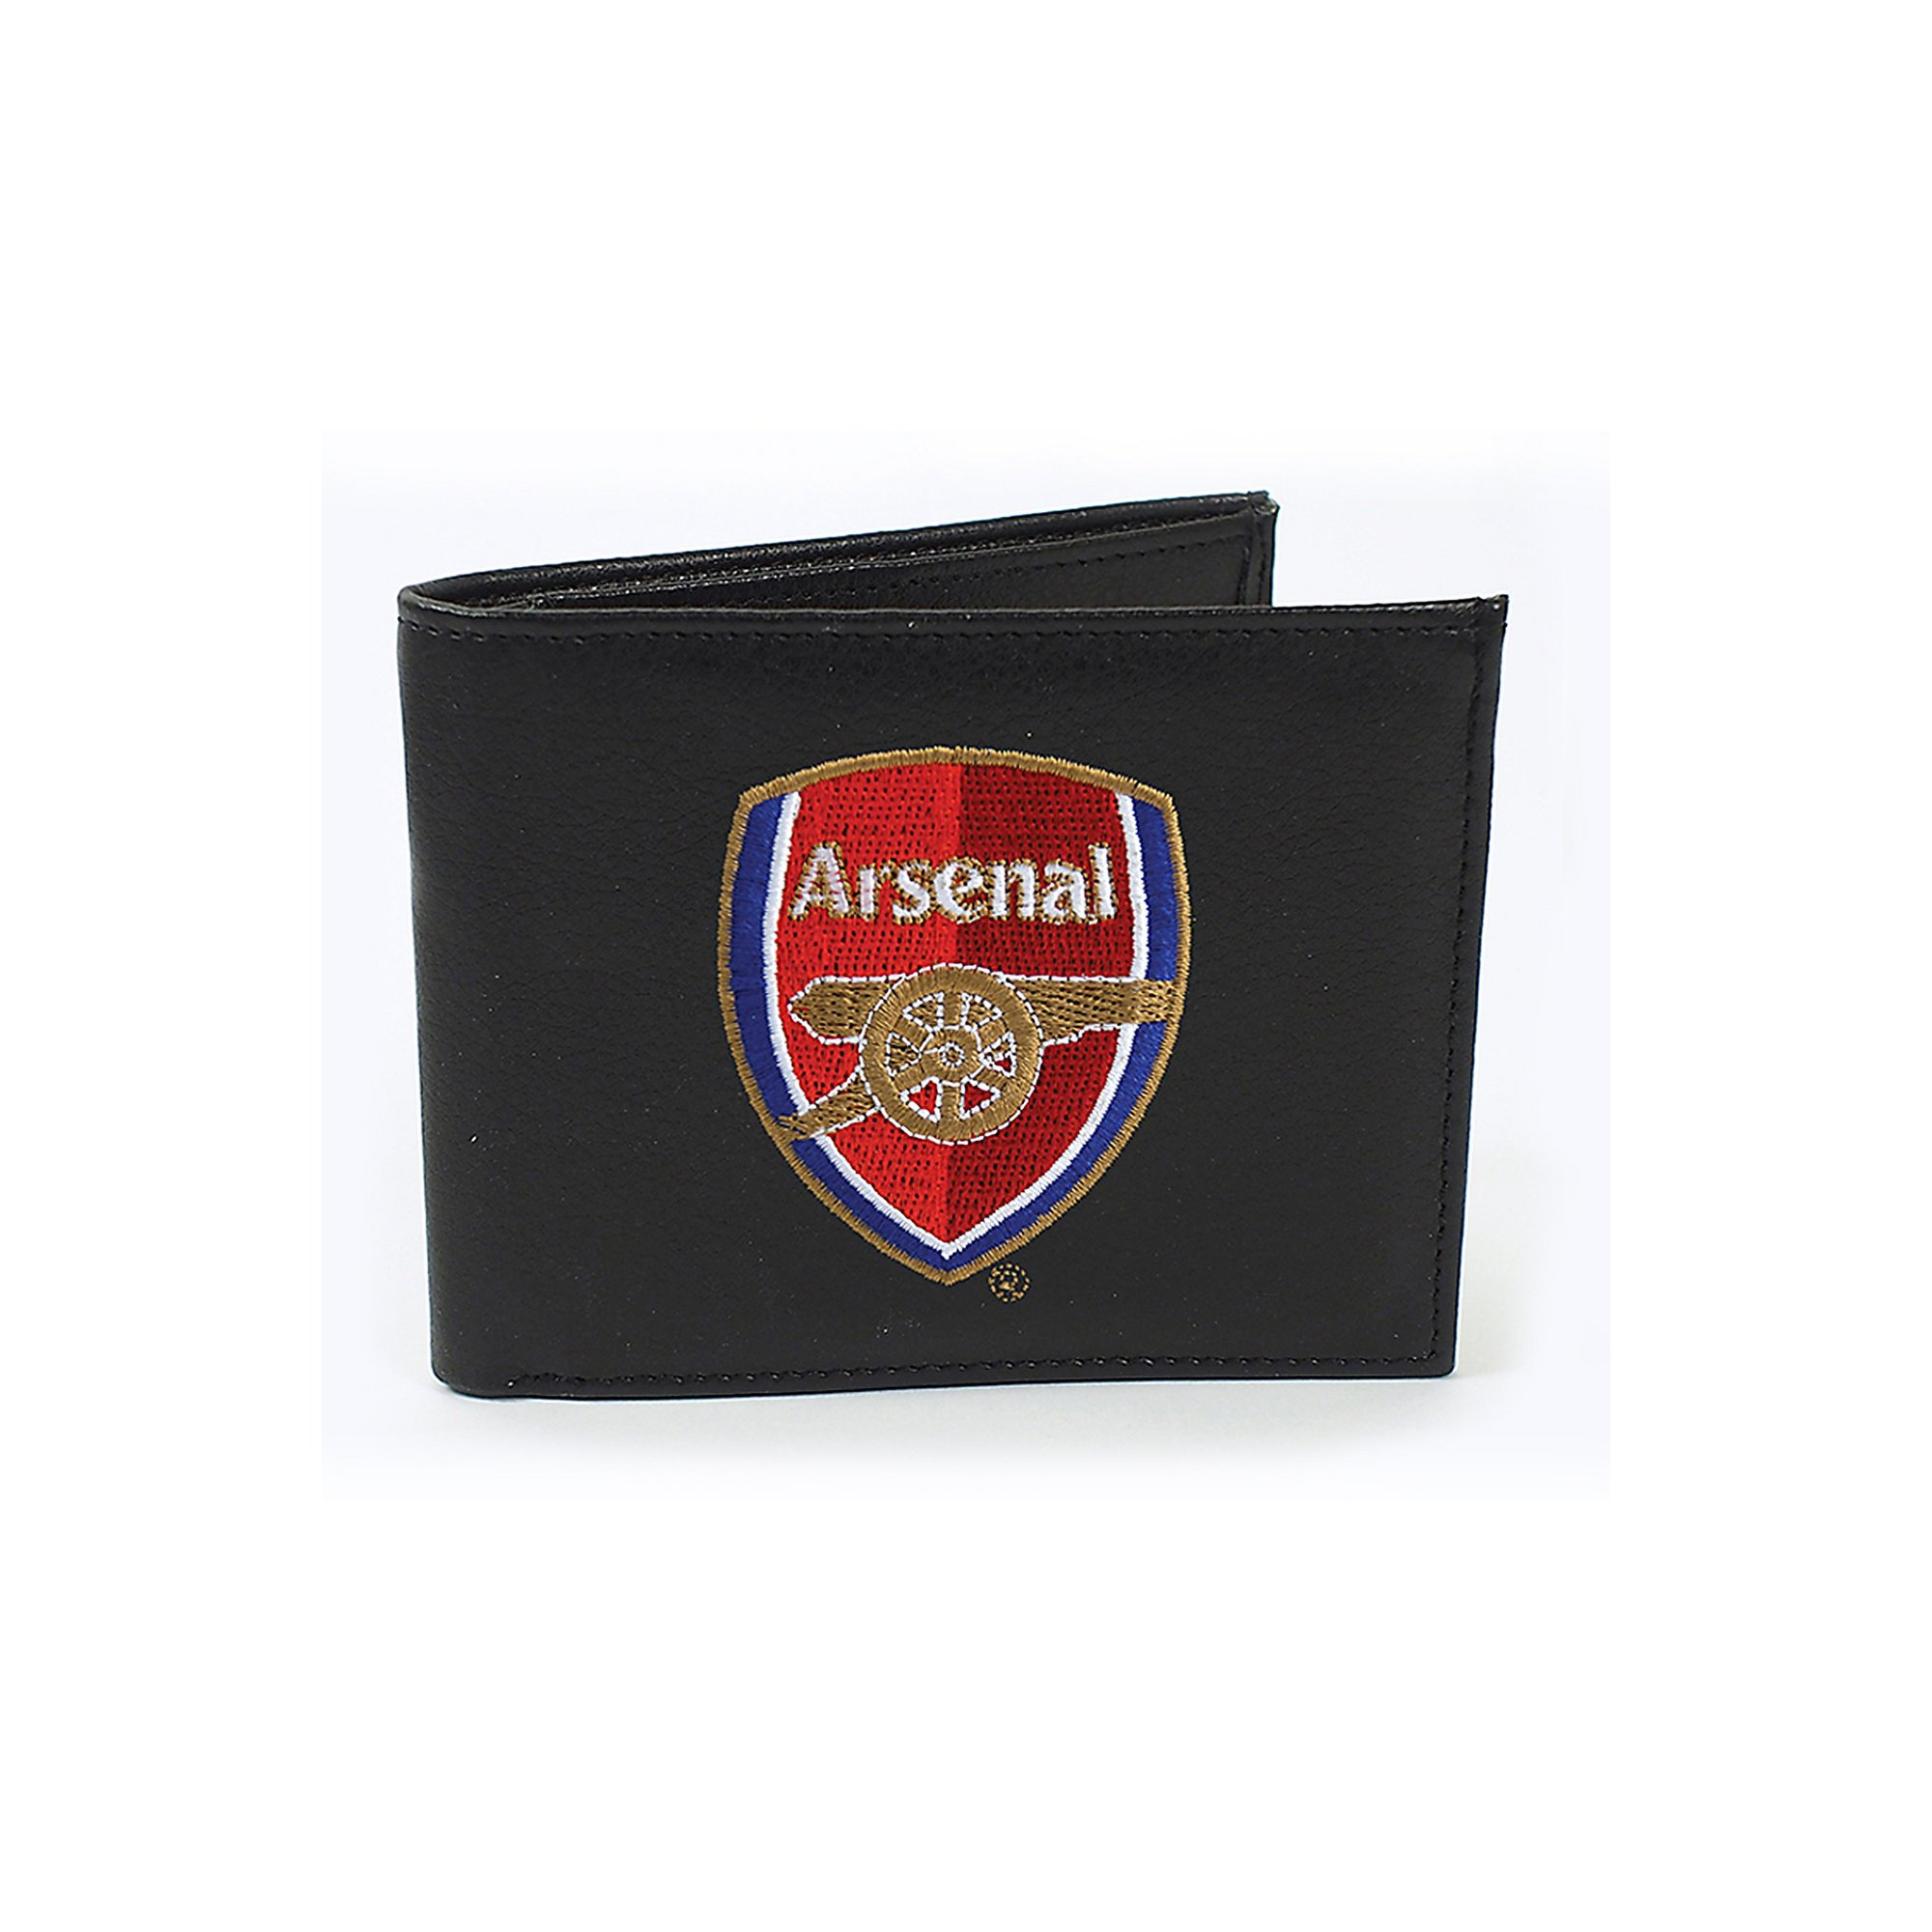 Image of Arsenal Embroidered Crest Wallet